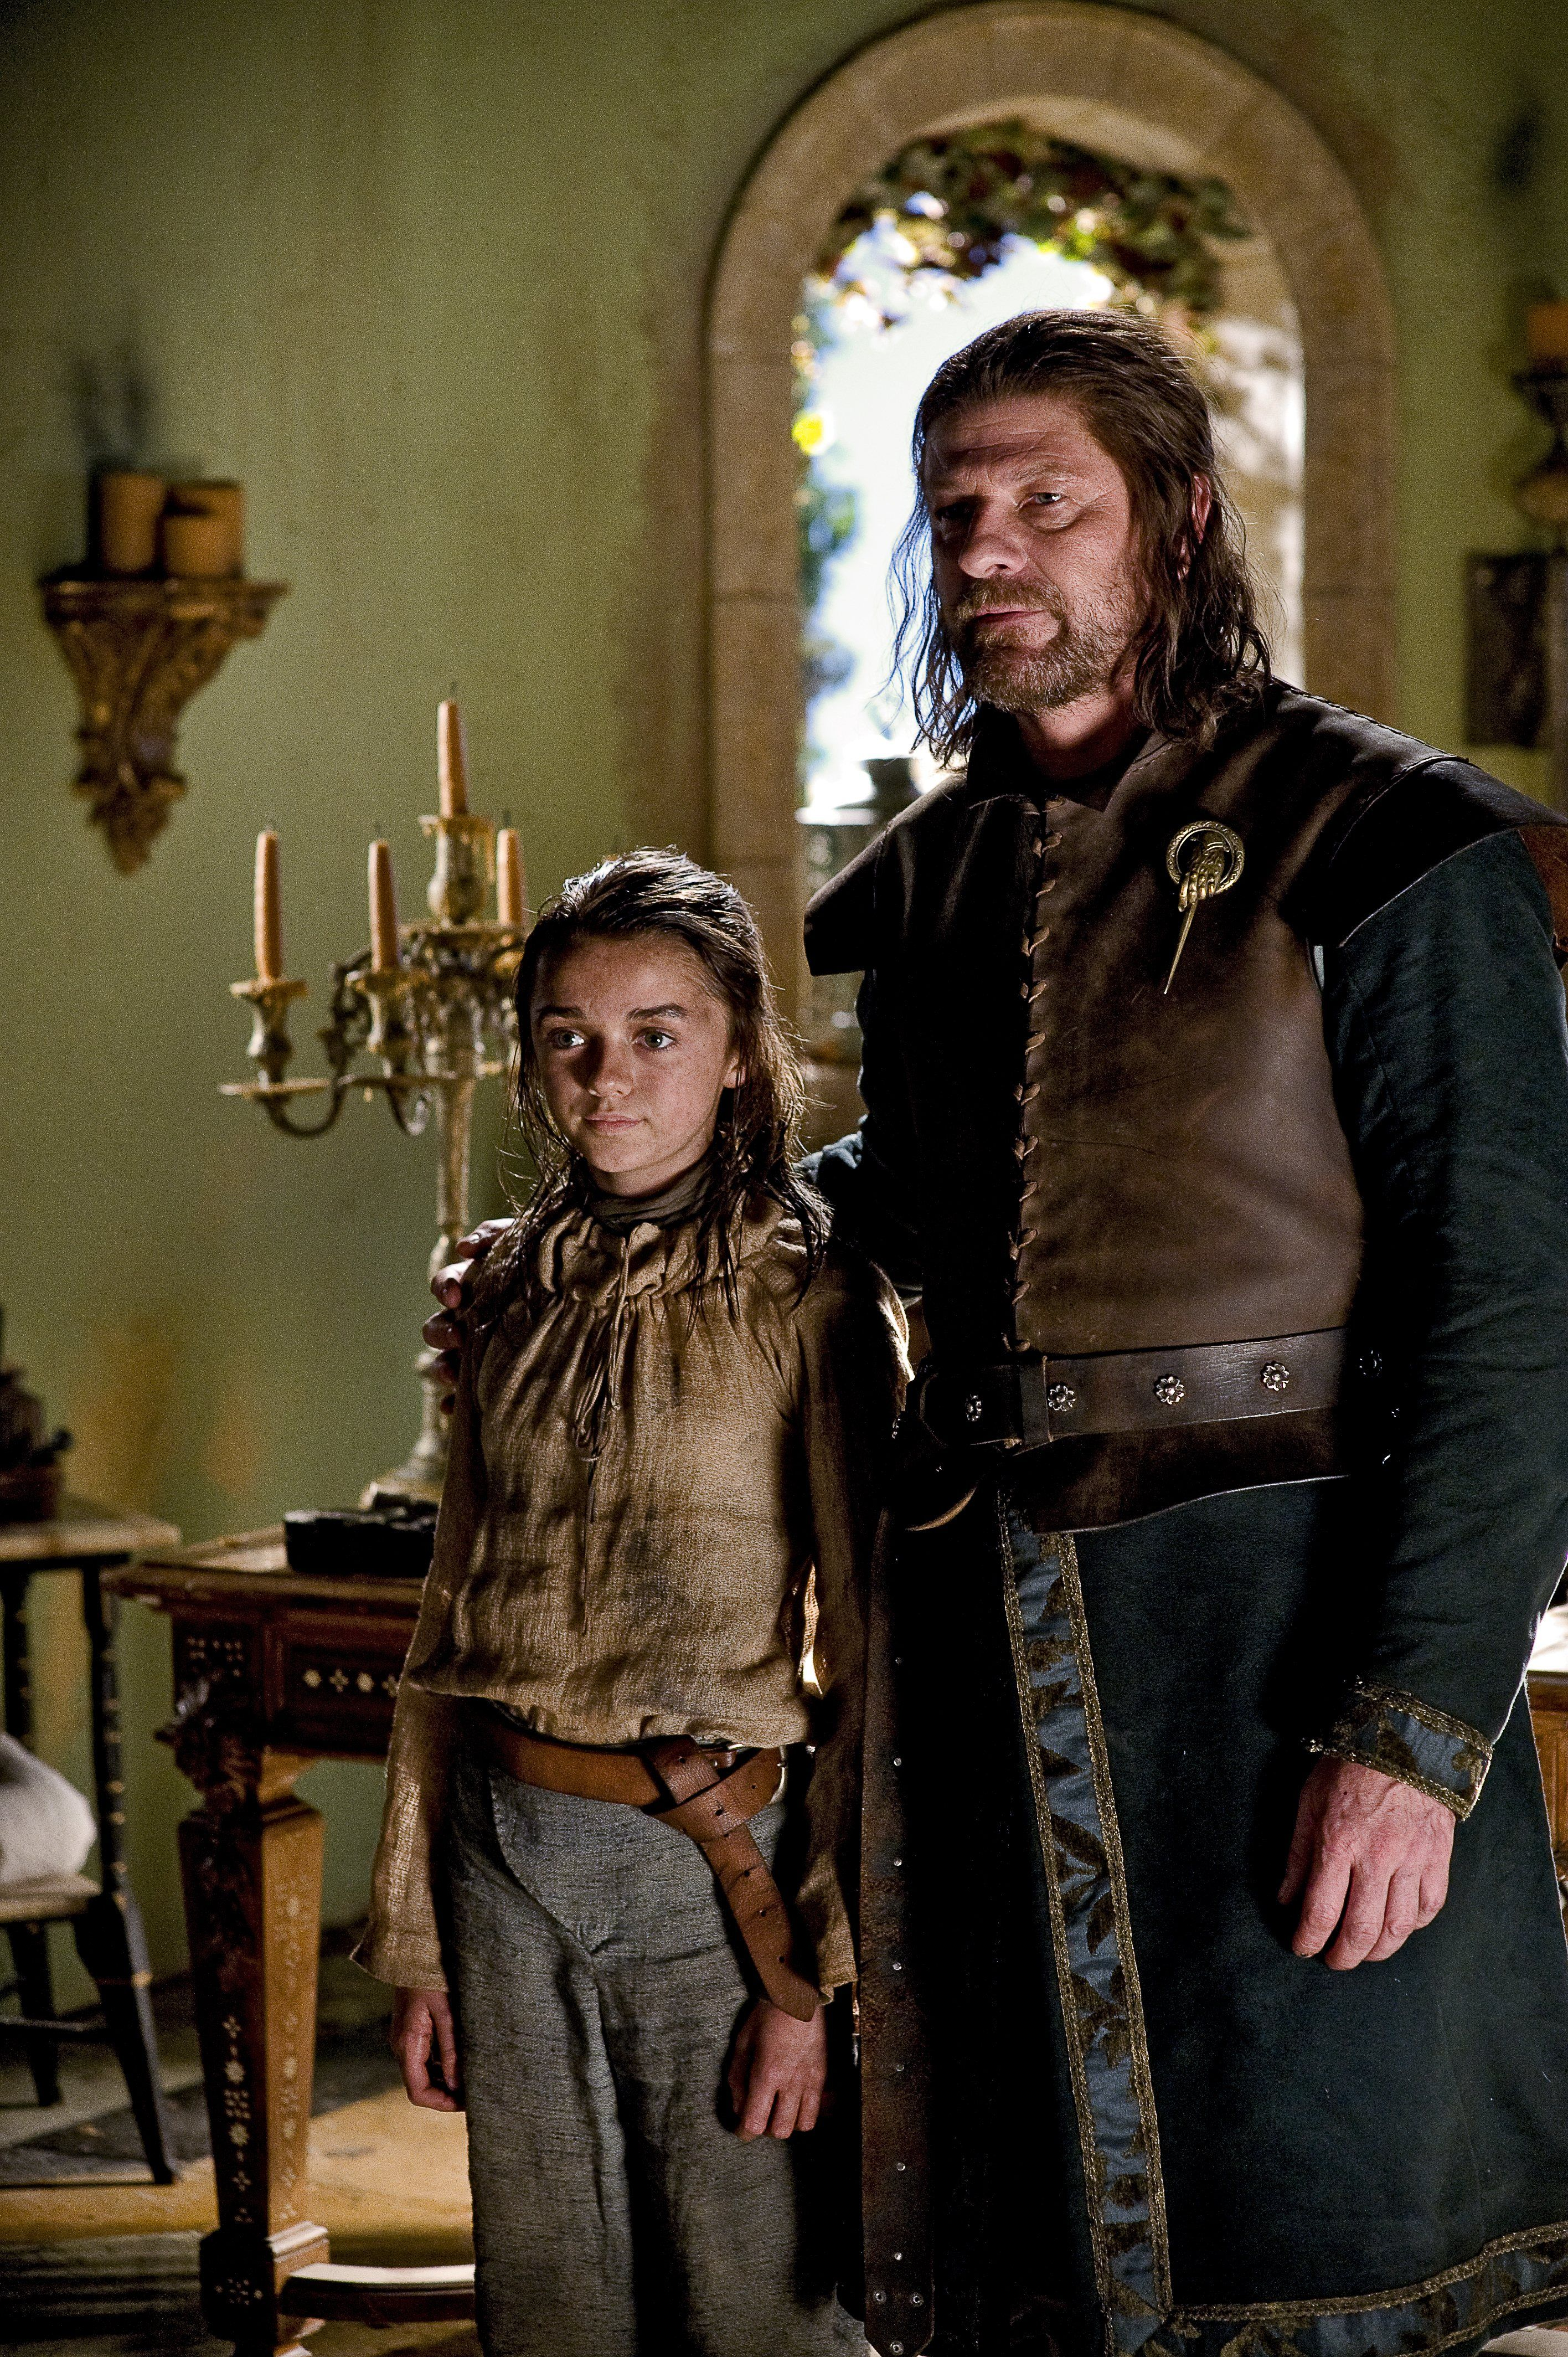 Game Of Thrones Personnage : thrones, personnage, Thrones, Season, Episode, Still, Stark,, Personnages,, Costumes